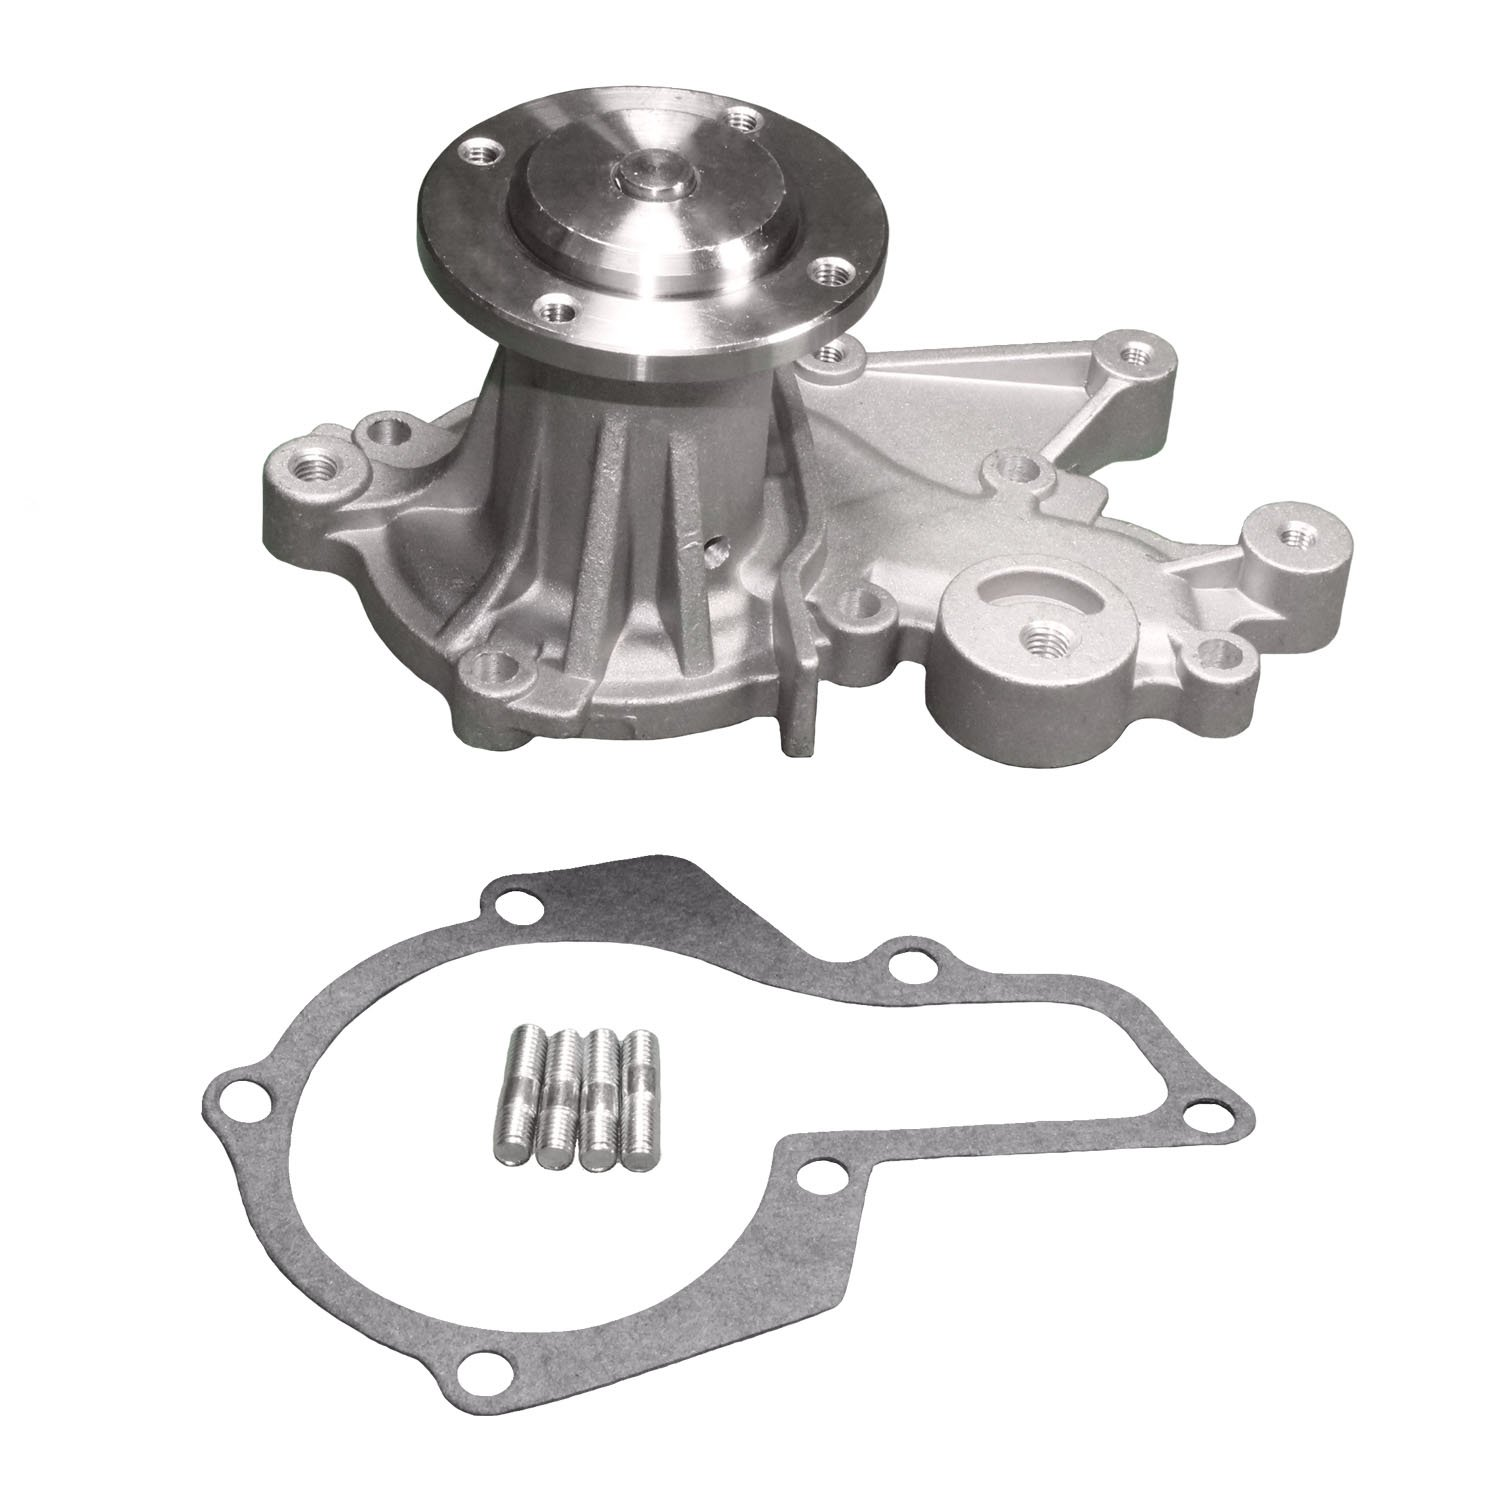 ACDelco 252-197 Professional Water Pump Kit